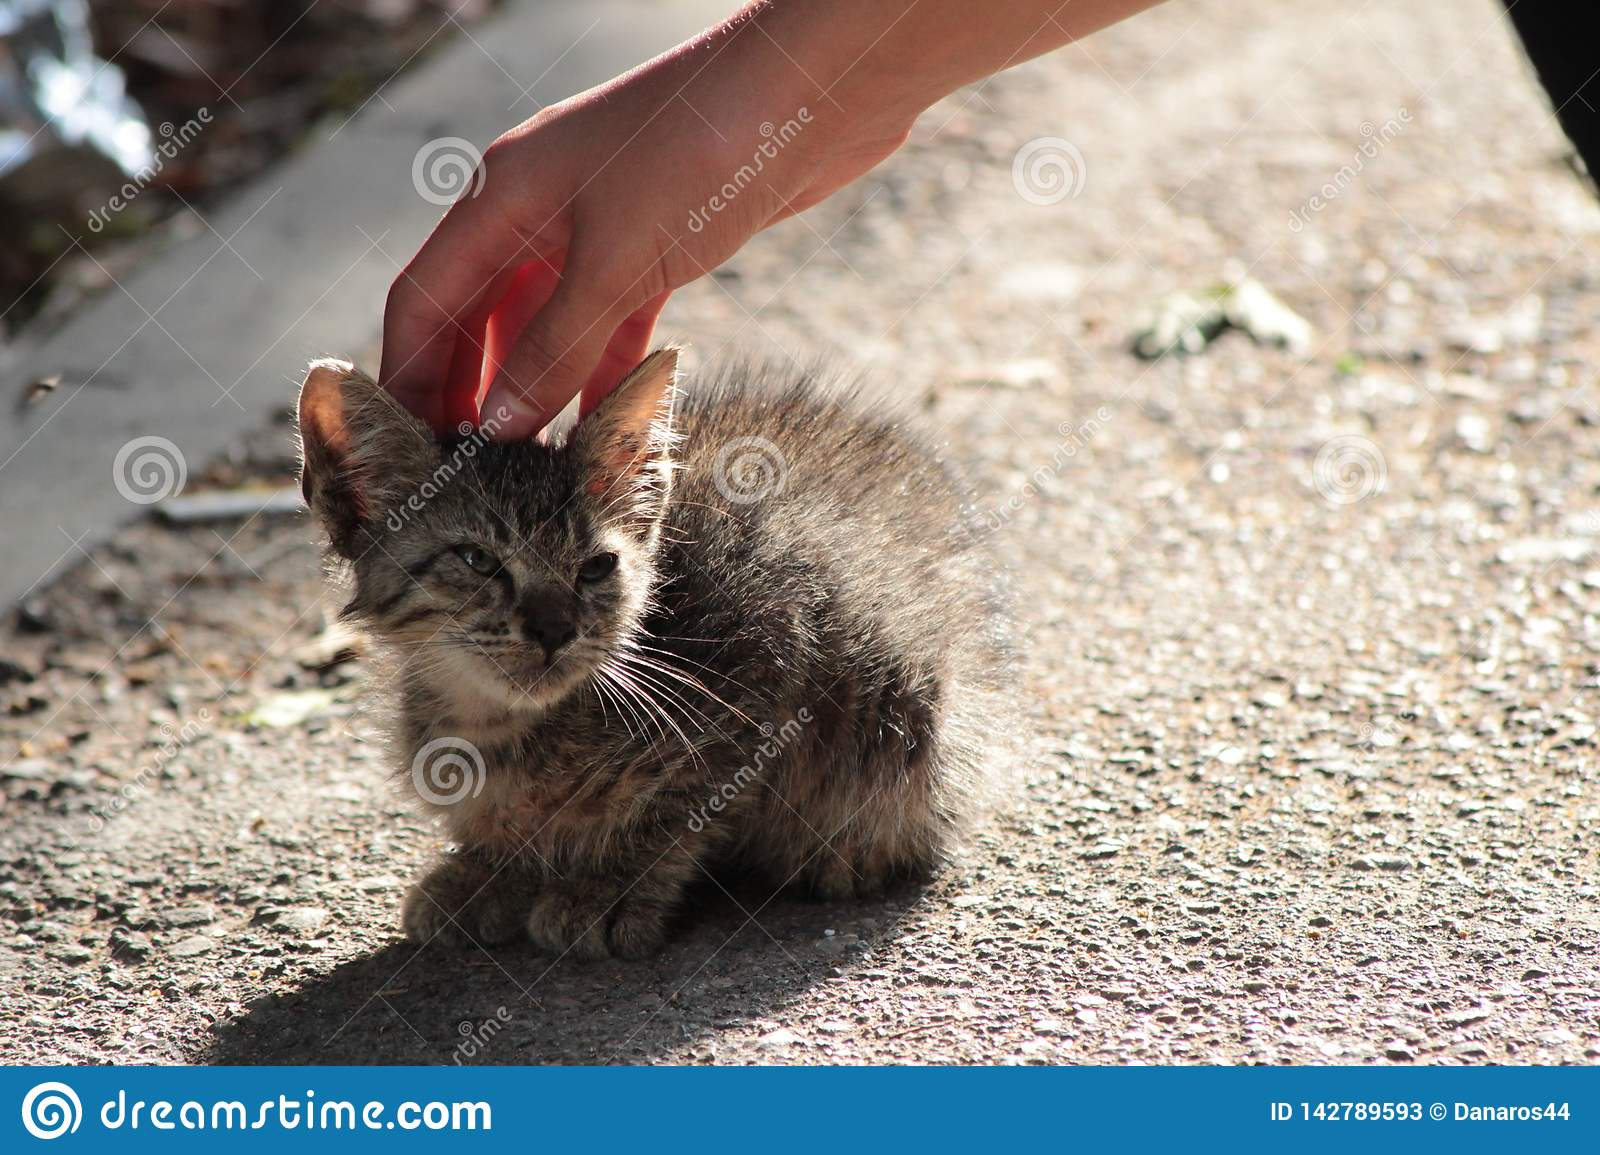 Stray kitty in the street